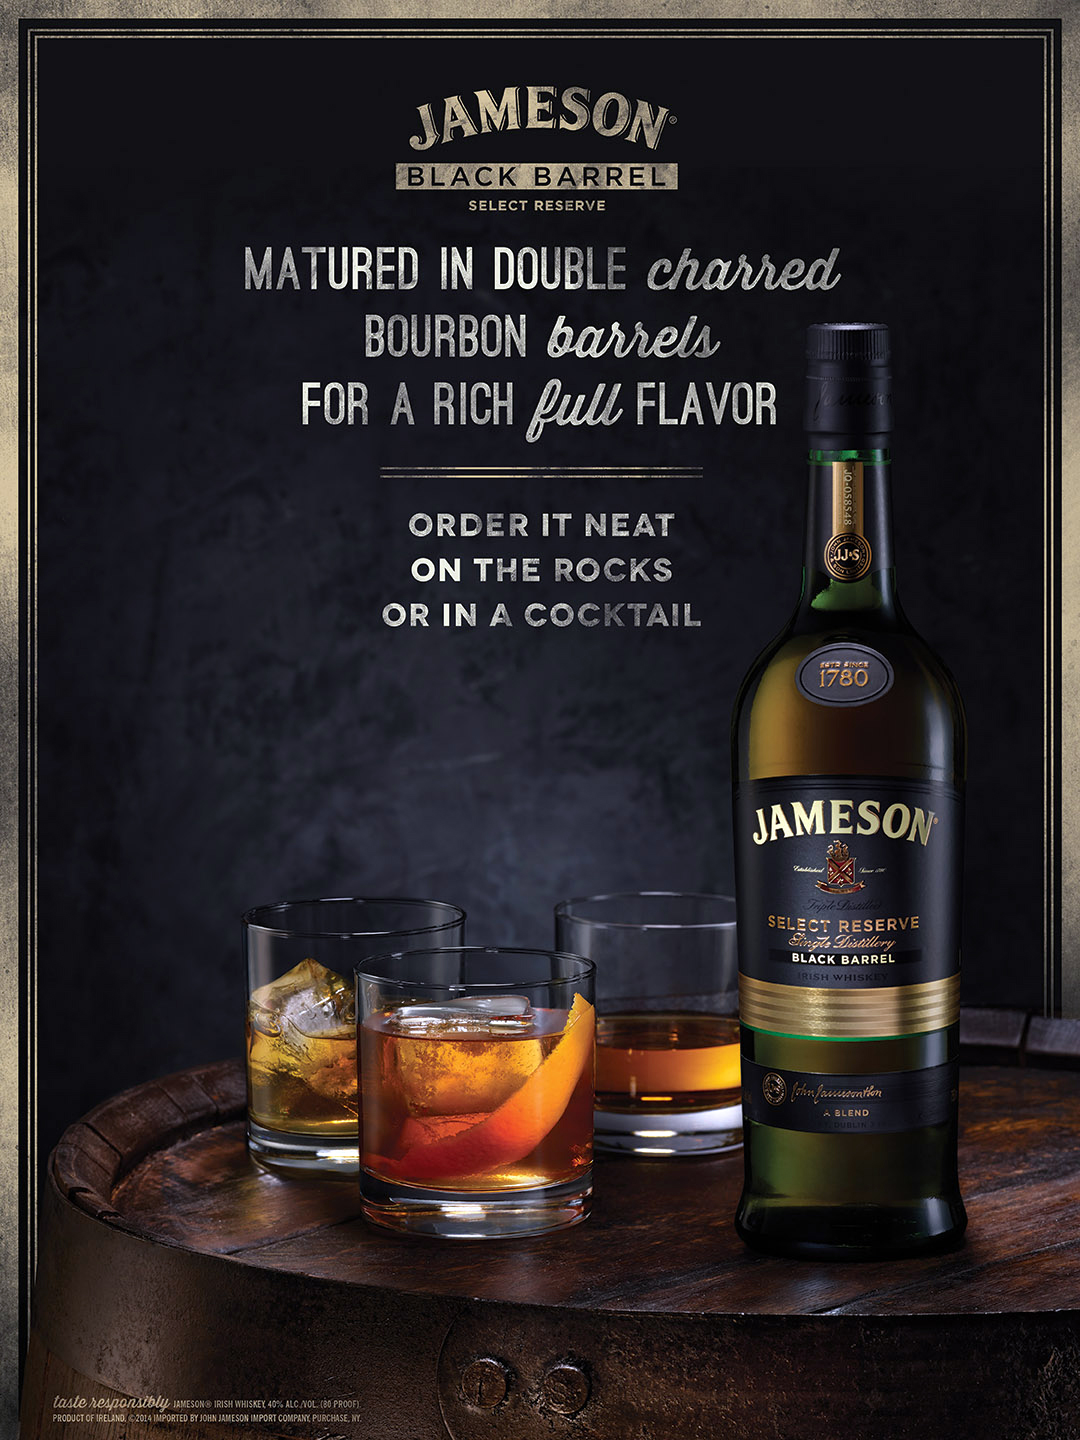 Jameson Black Barrel Ad